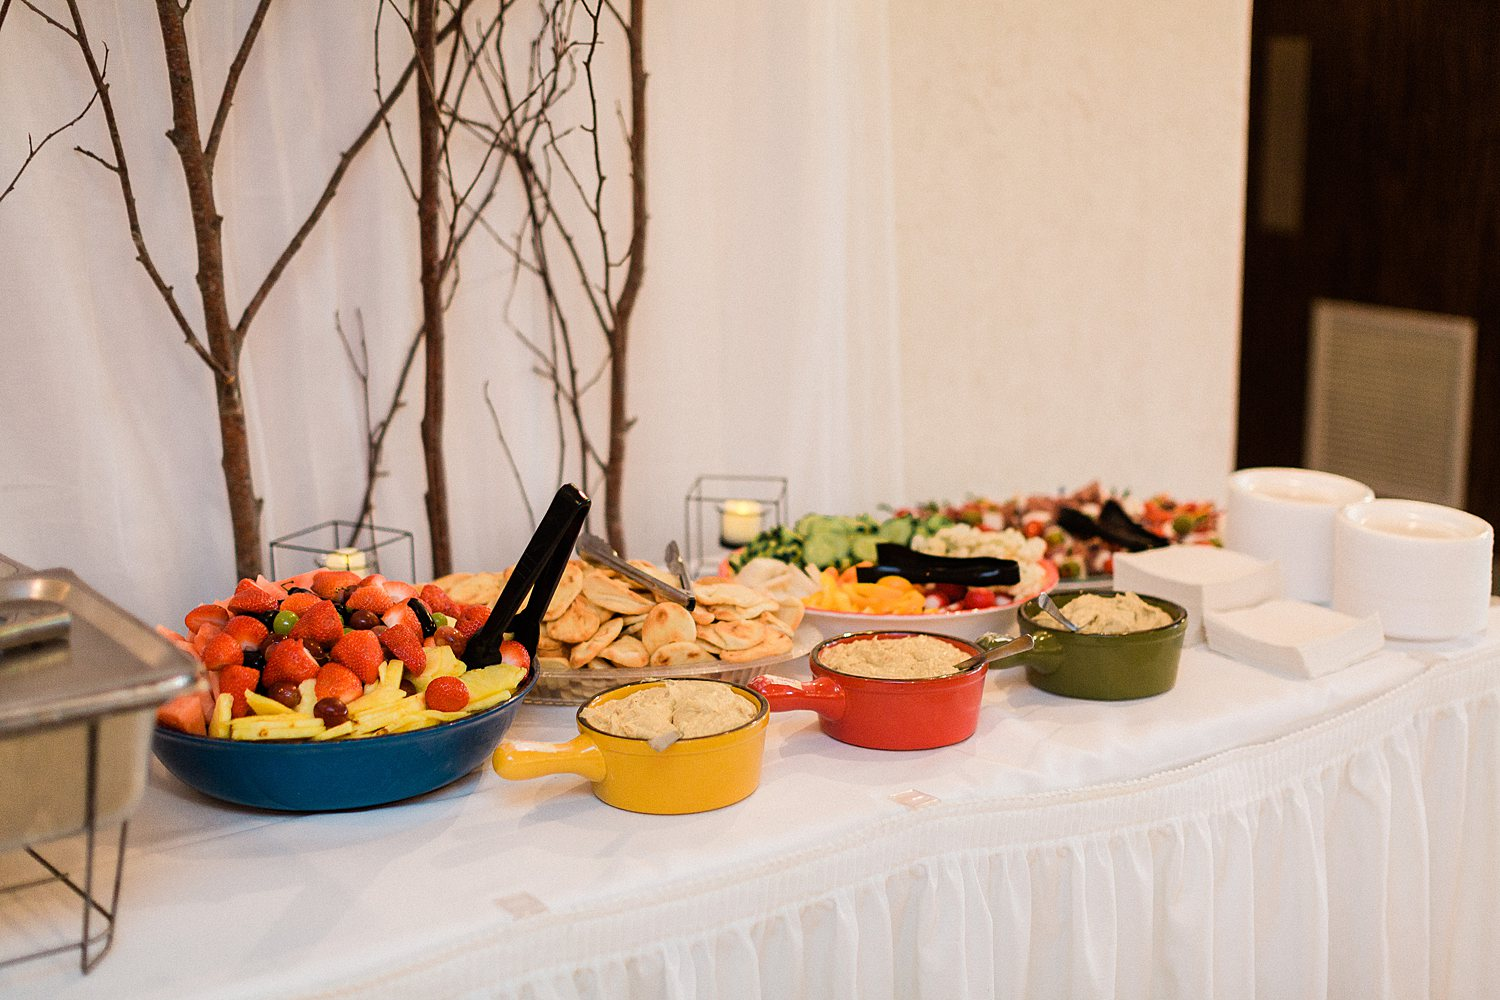 North_Central_Wisconsin_Event_Wedding_Venues_Fall_Weddings_The_Bailiwick_Venue_James-Stokes-Photography093.jpg